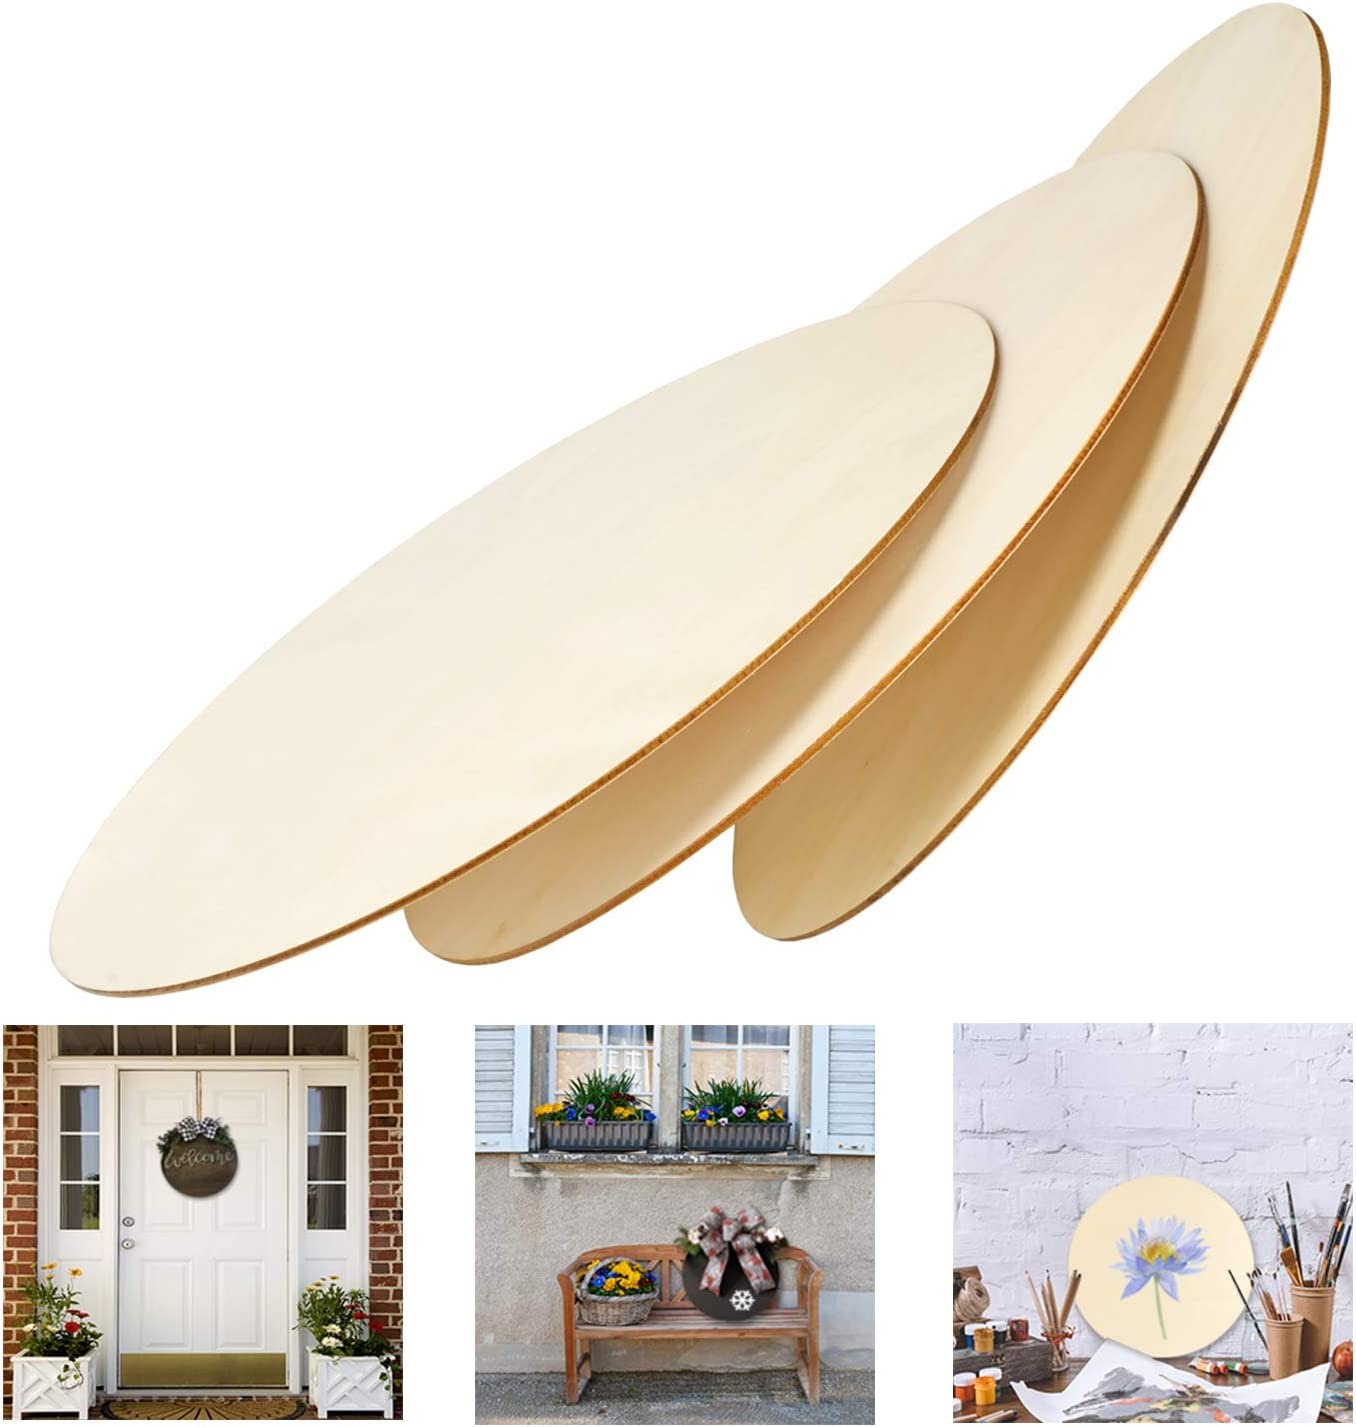 10 Pcs Unfinished Wooden Circle Shapes,8 inch Wood Circle Cutouts DIY Coasters Party Favours Gift Idea Home Decoration Craft